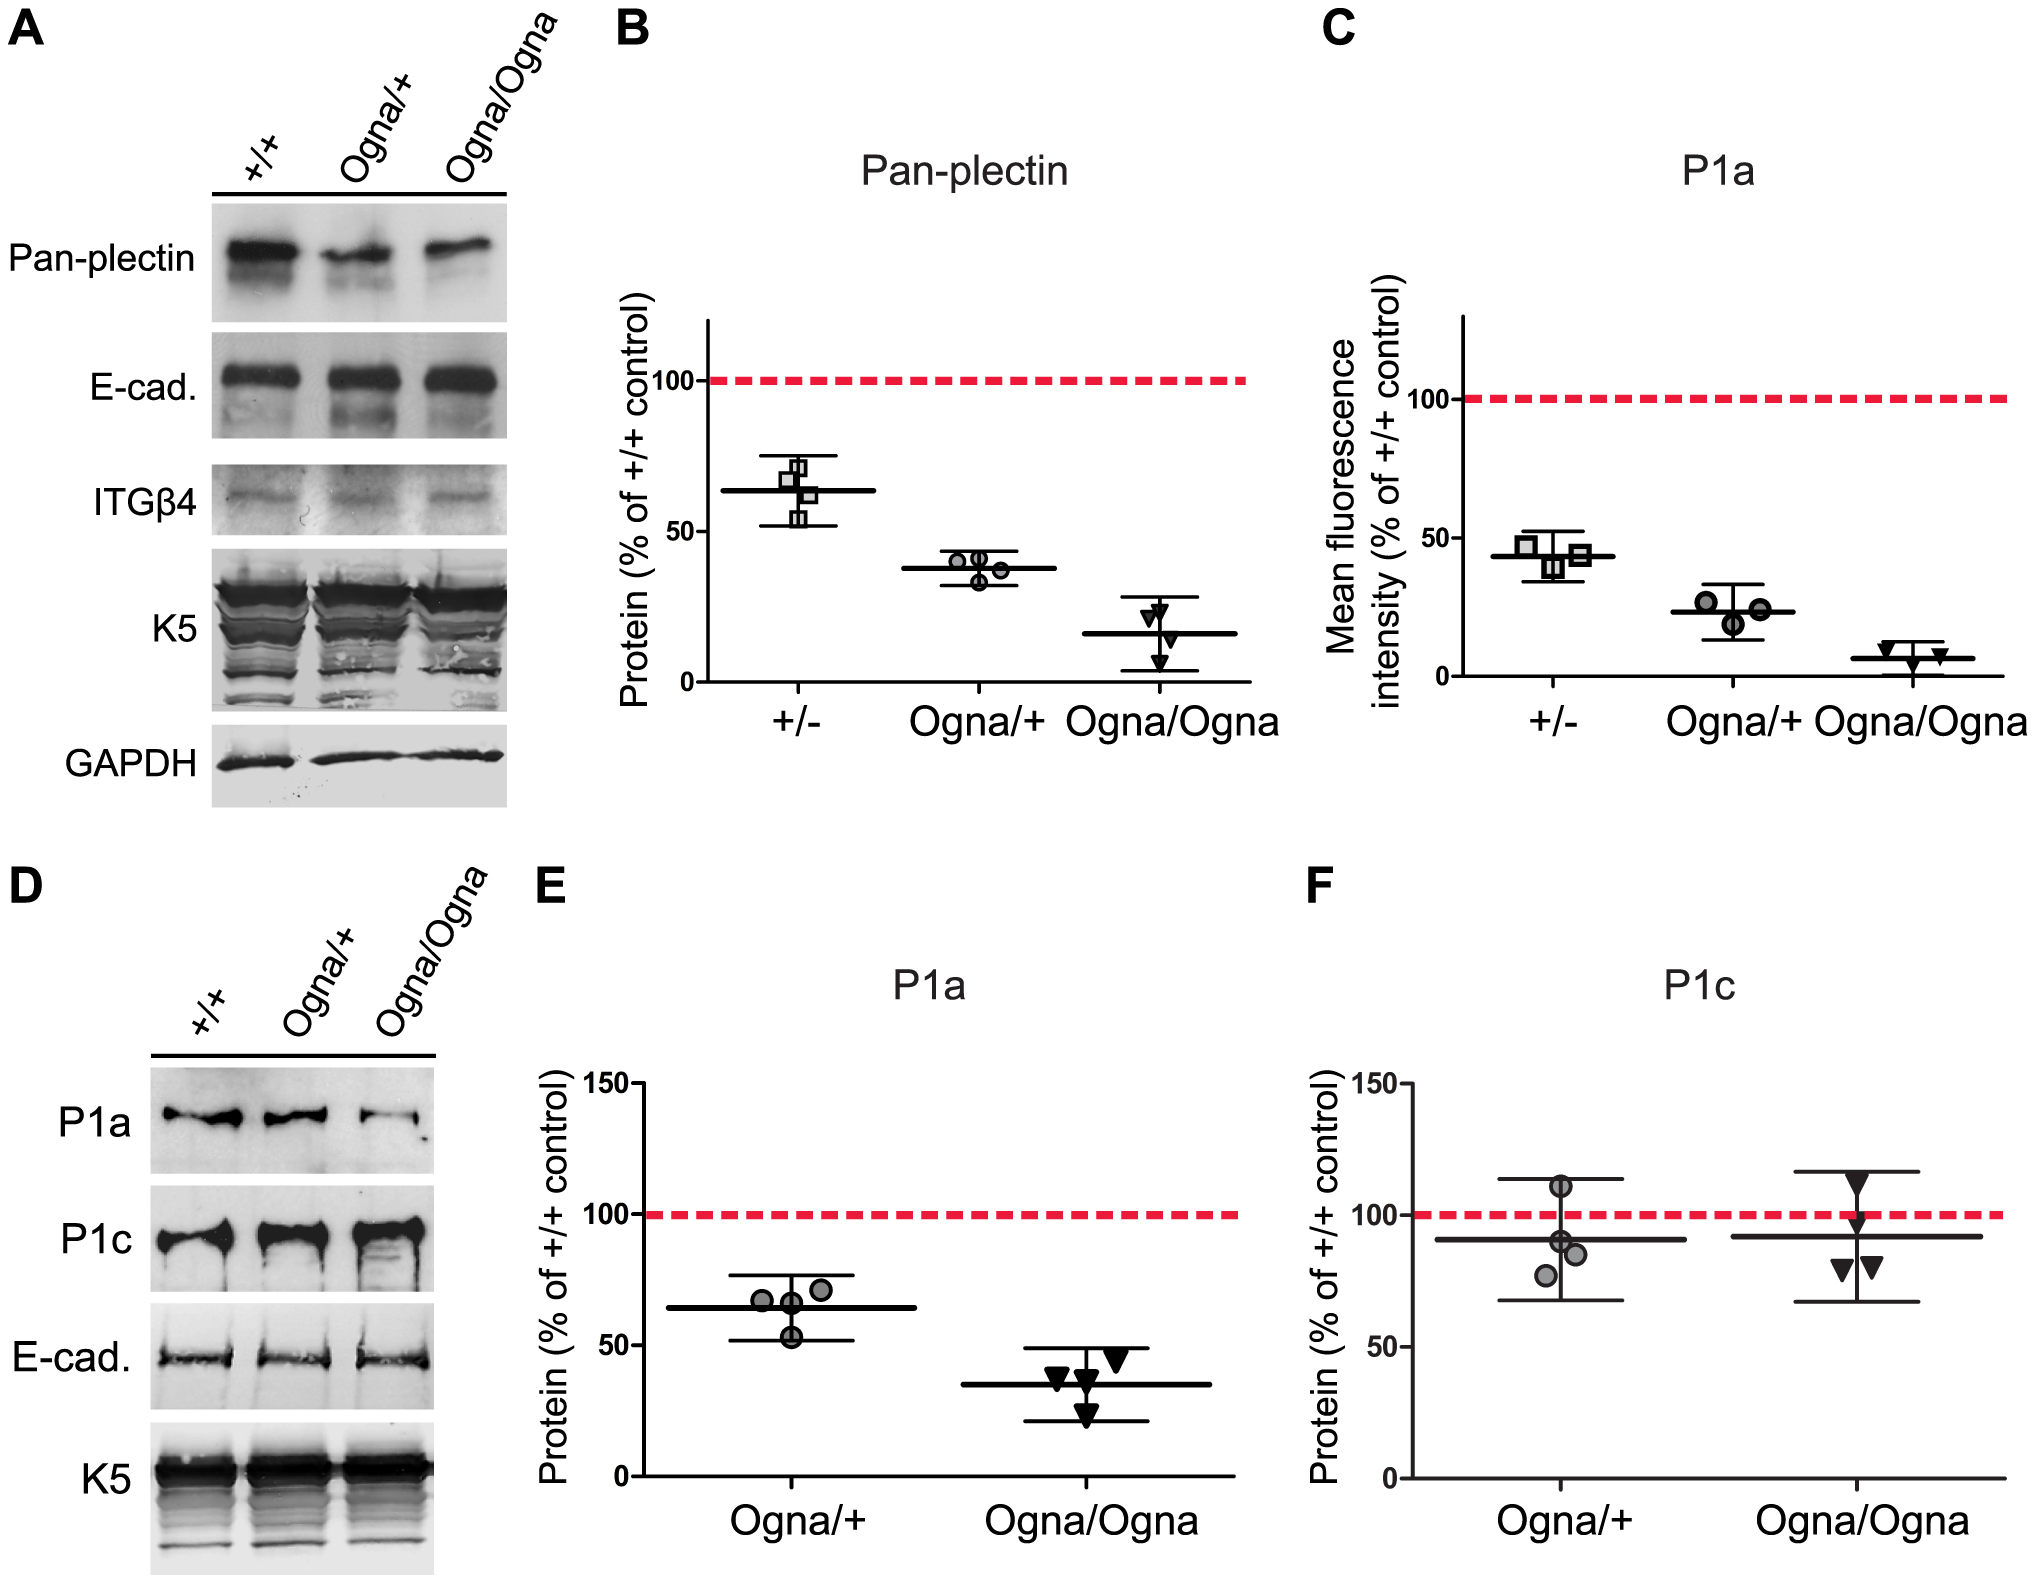 Downregulation of P1a protein levels in Ogna keratinocytes.